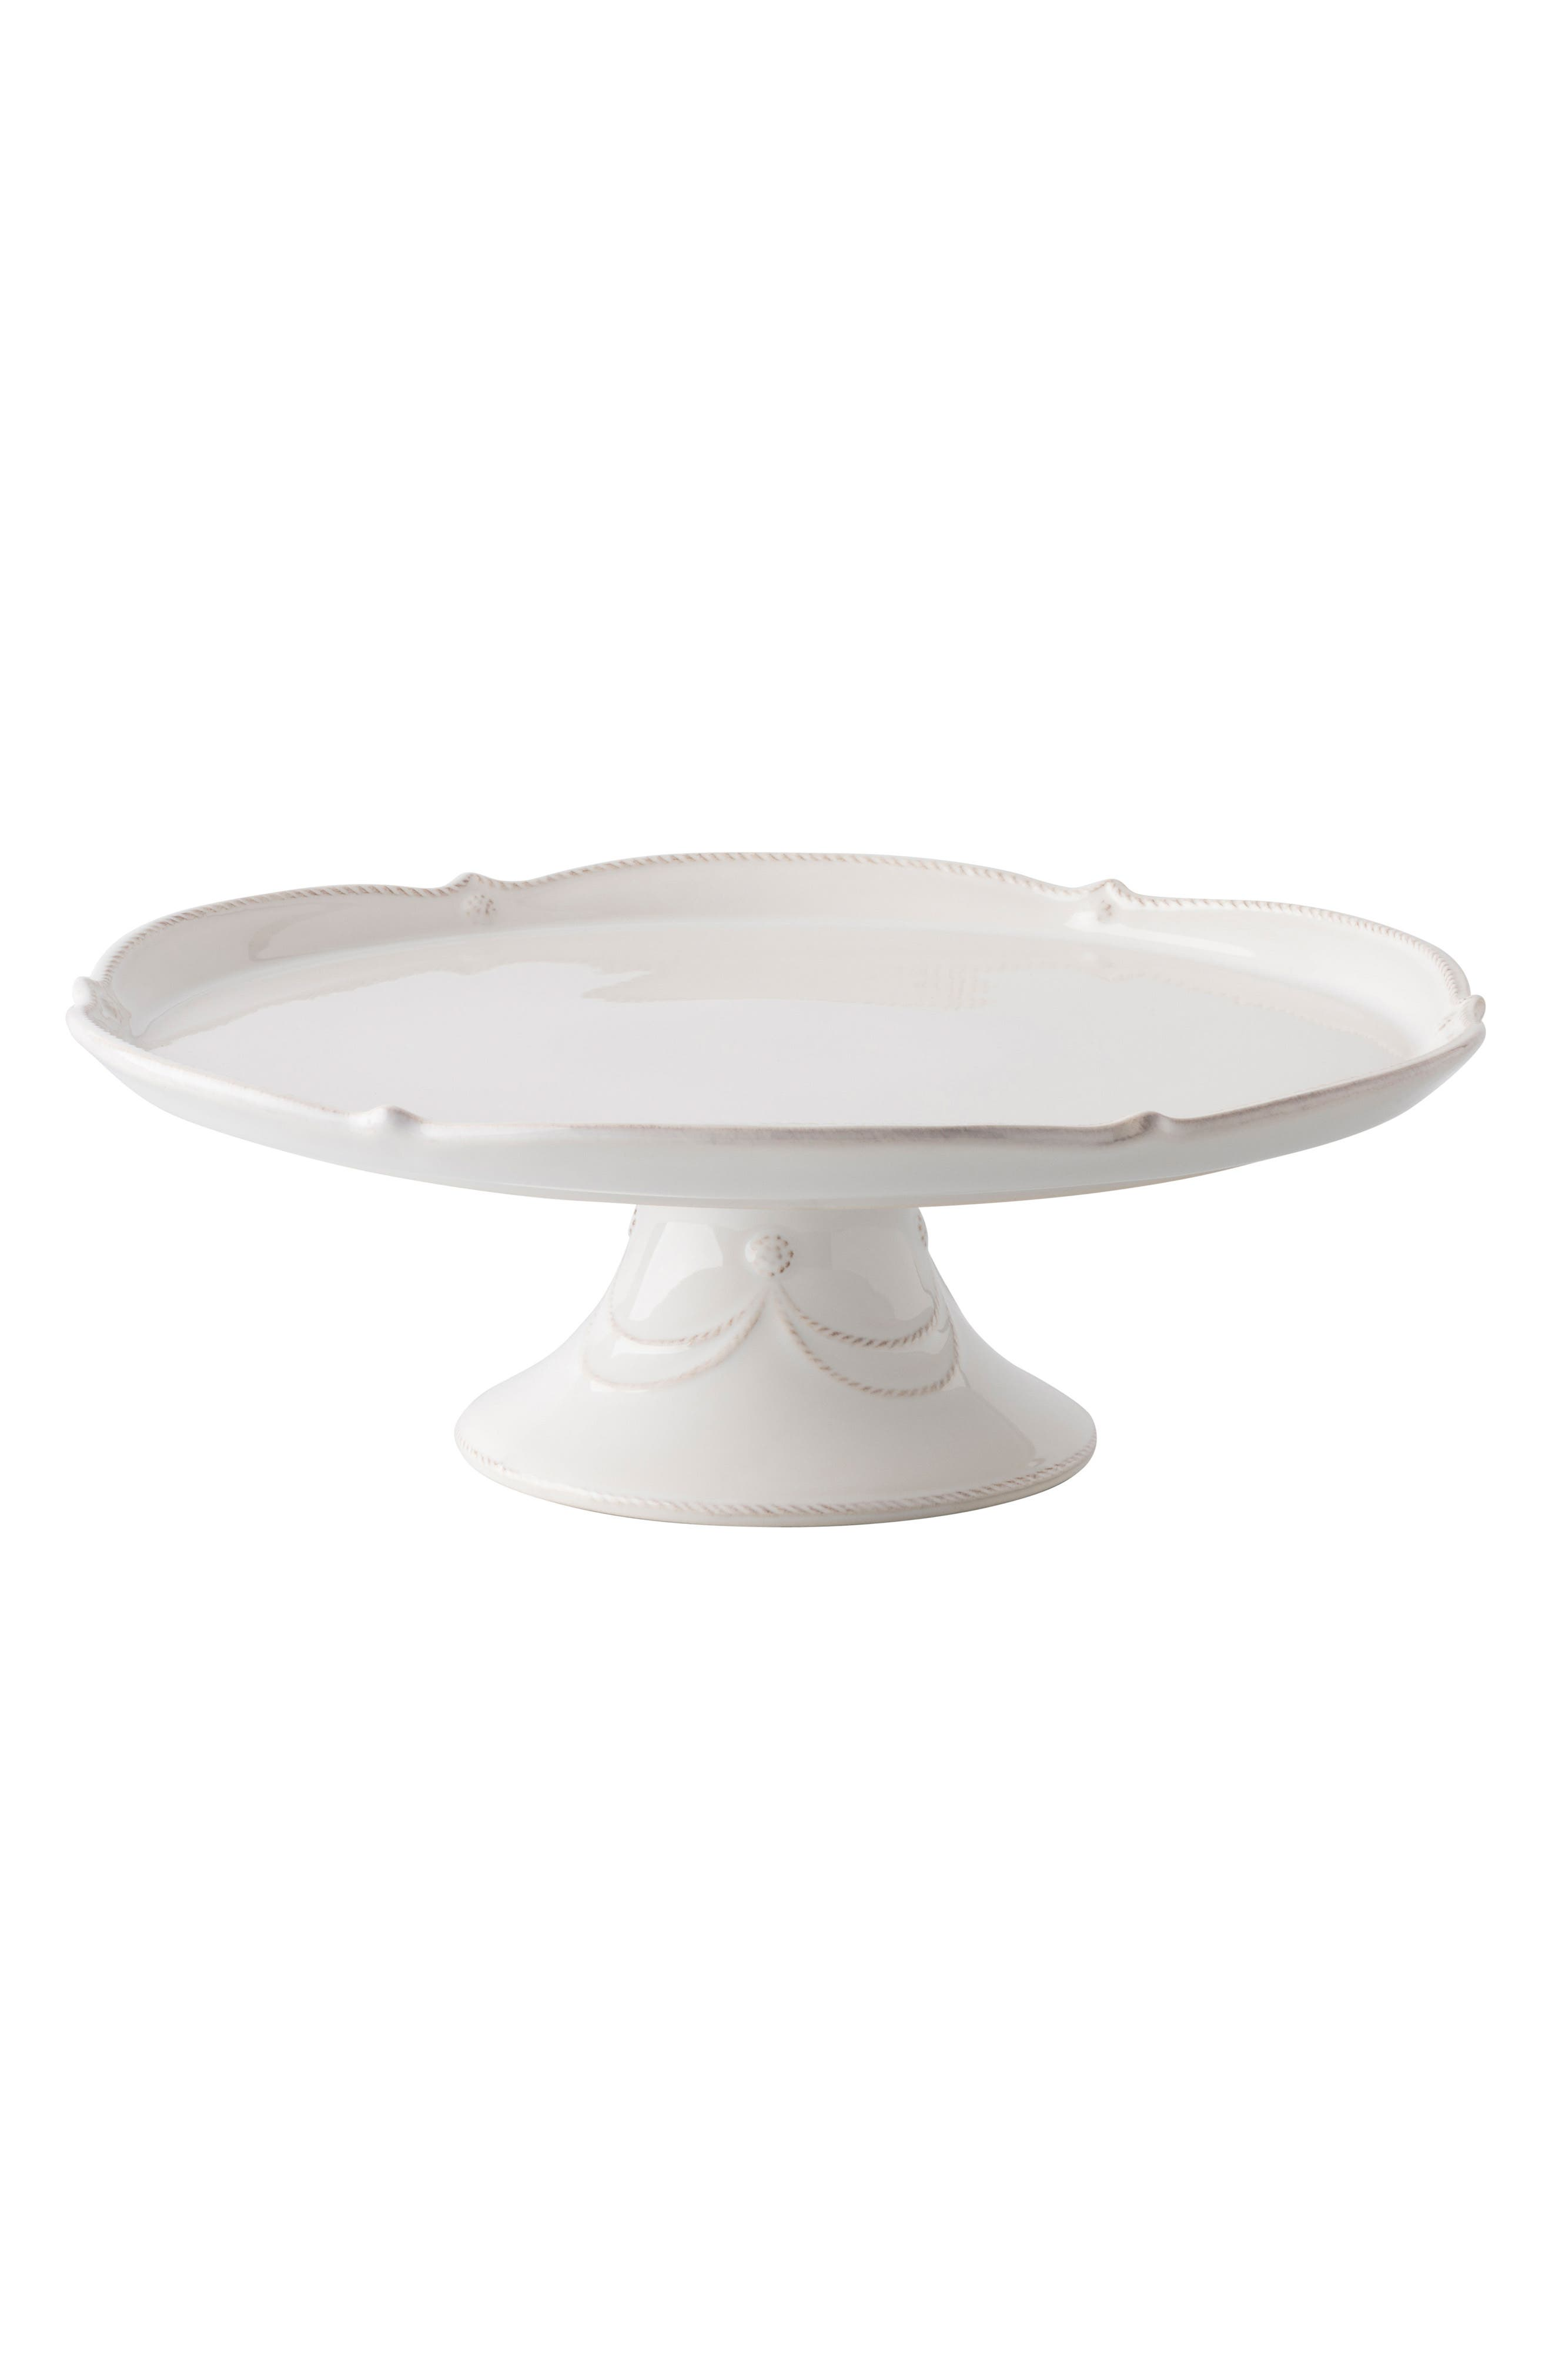 JULISKA, Berry & Thread Ceramic Cake Stand, Main thumbnail 1, color, WHITEWASH